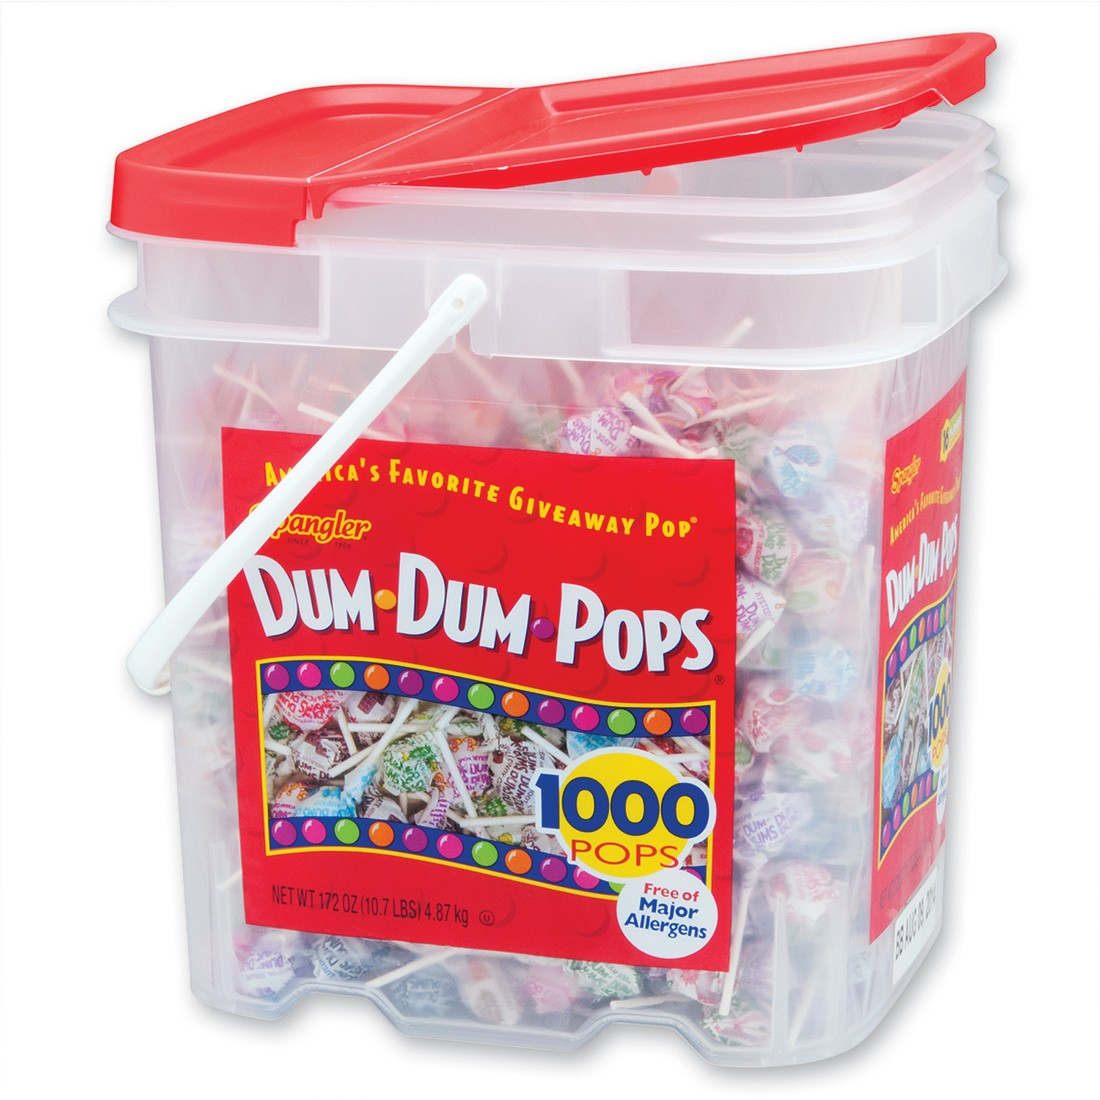 Dum Dums® Pops in a Tub [image]